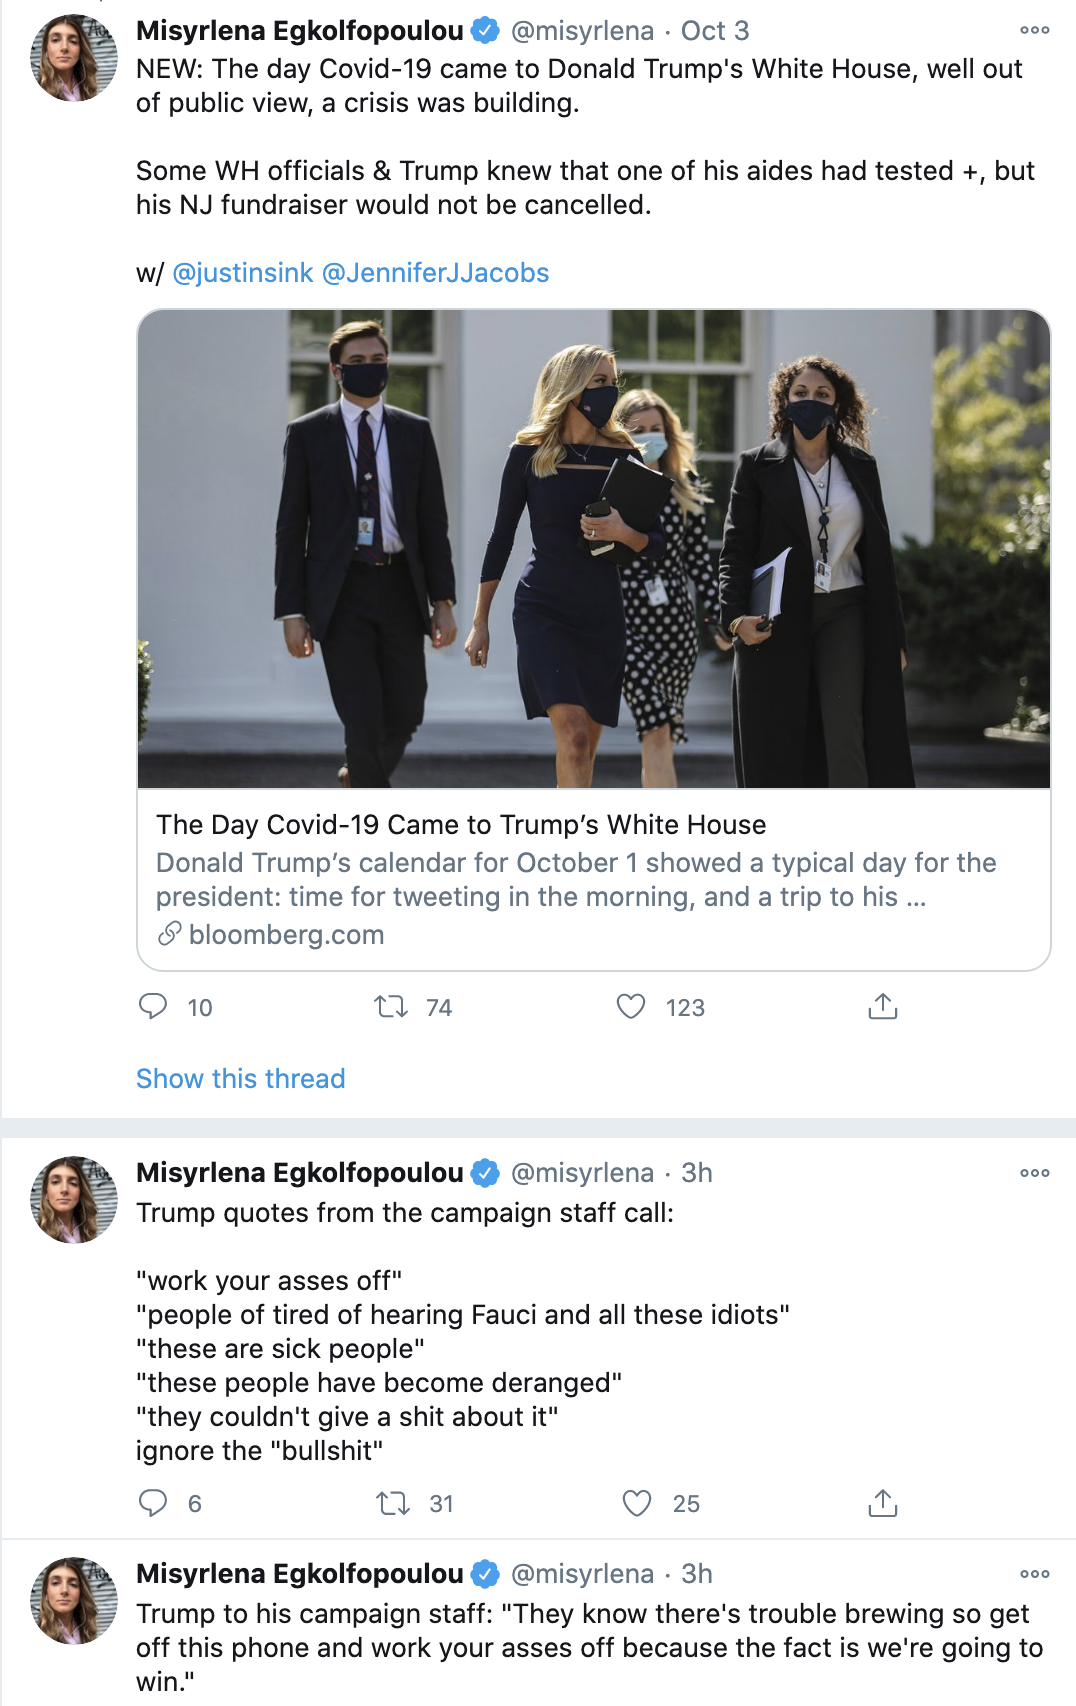 Screen-Shot-2020-10-19-at-1.58.58-PM Trump Erupts At Campaign Staffers: 'Ignore The B*llsh*t' Coronavirus Election 2020 Featured Politics Top Stories